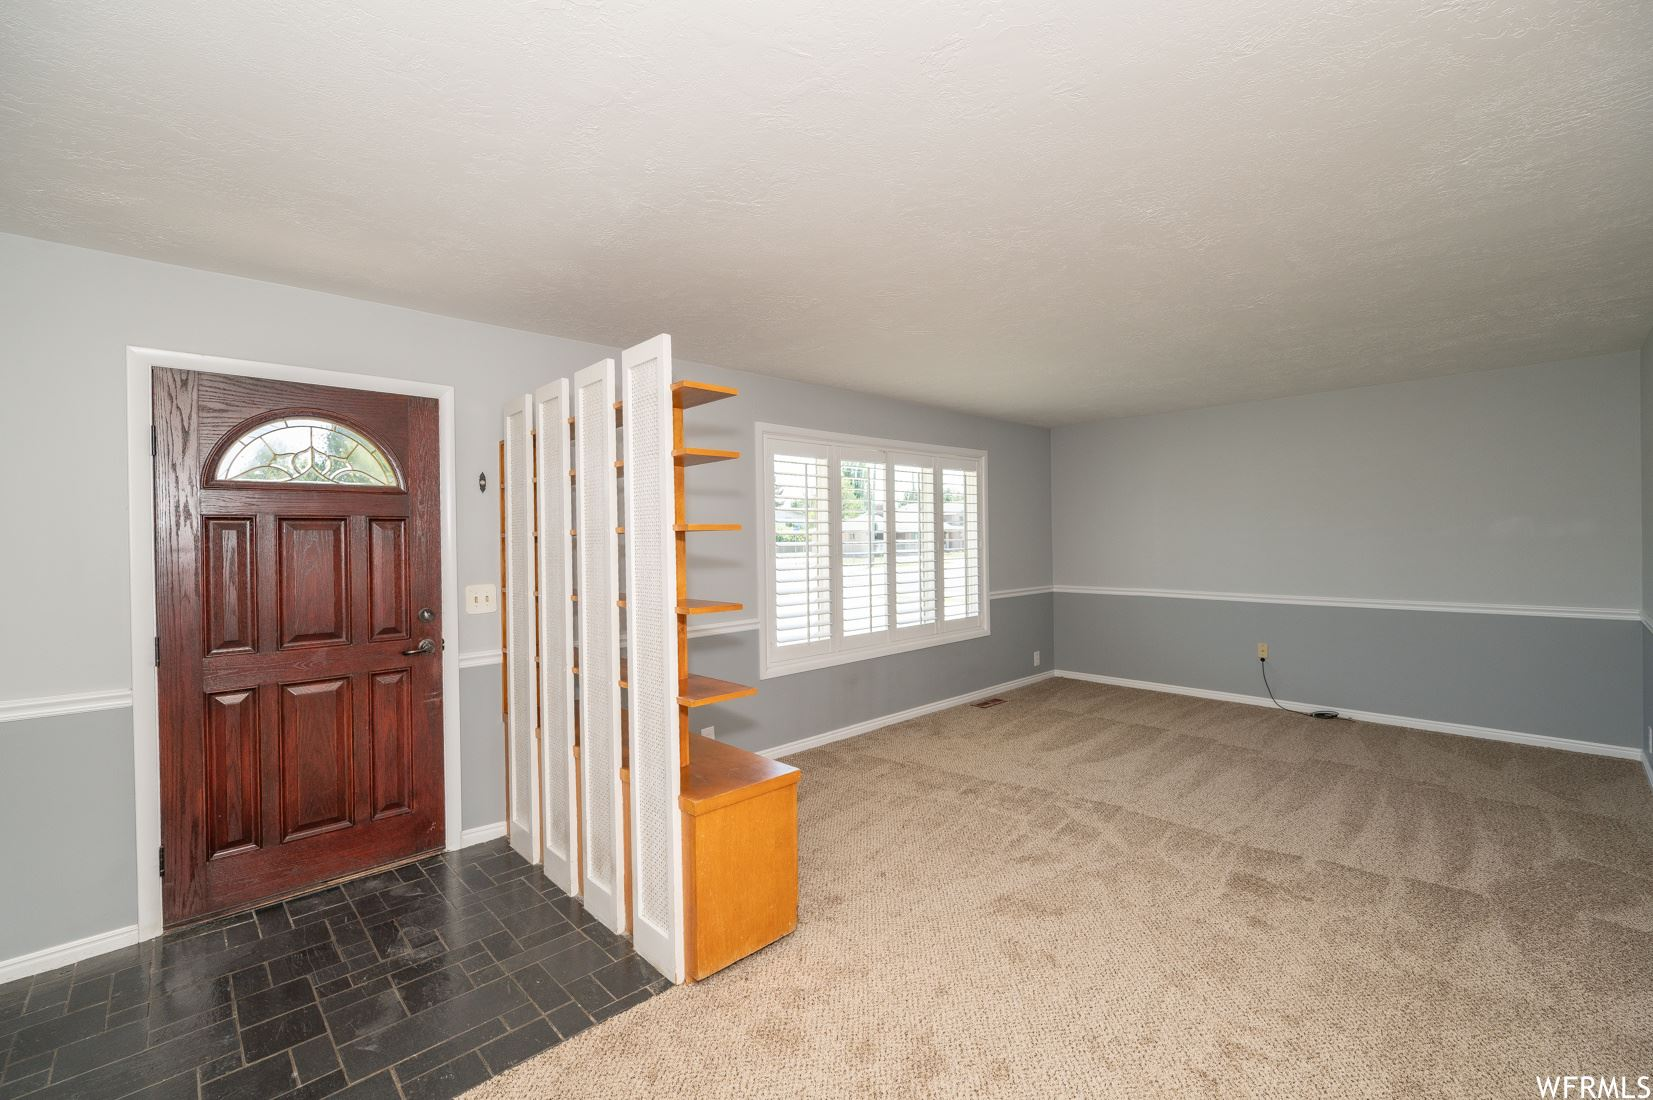 Photo of 1850 W MANTLE AVE, Taylorsville, UT 84129 (MLS # 1753817)